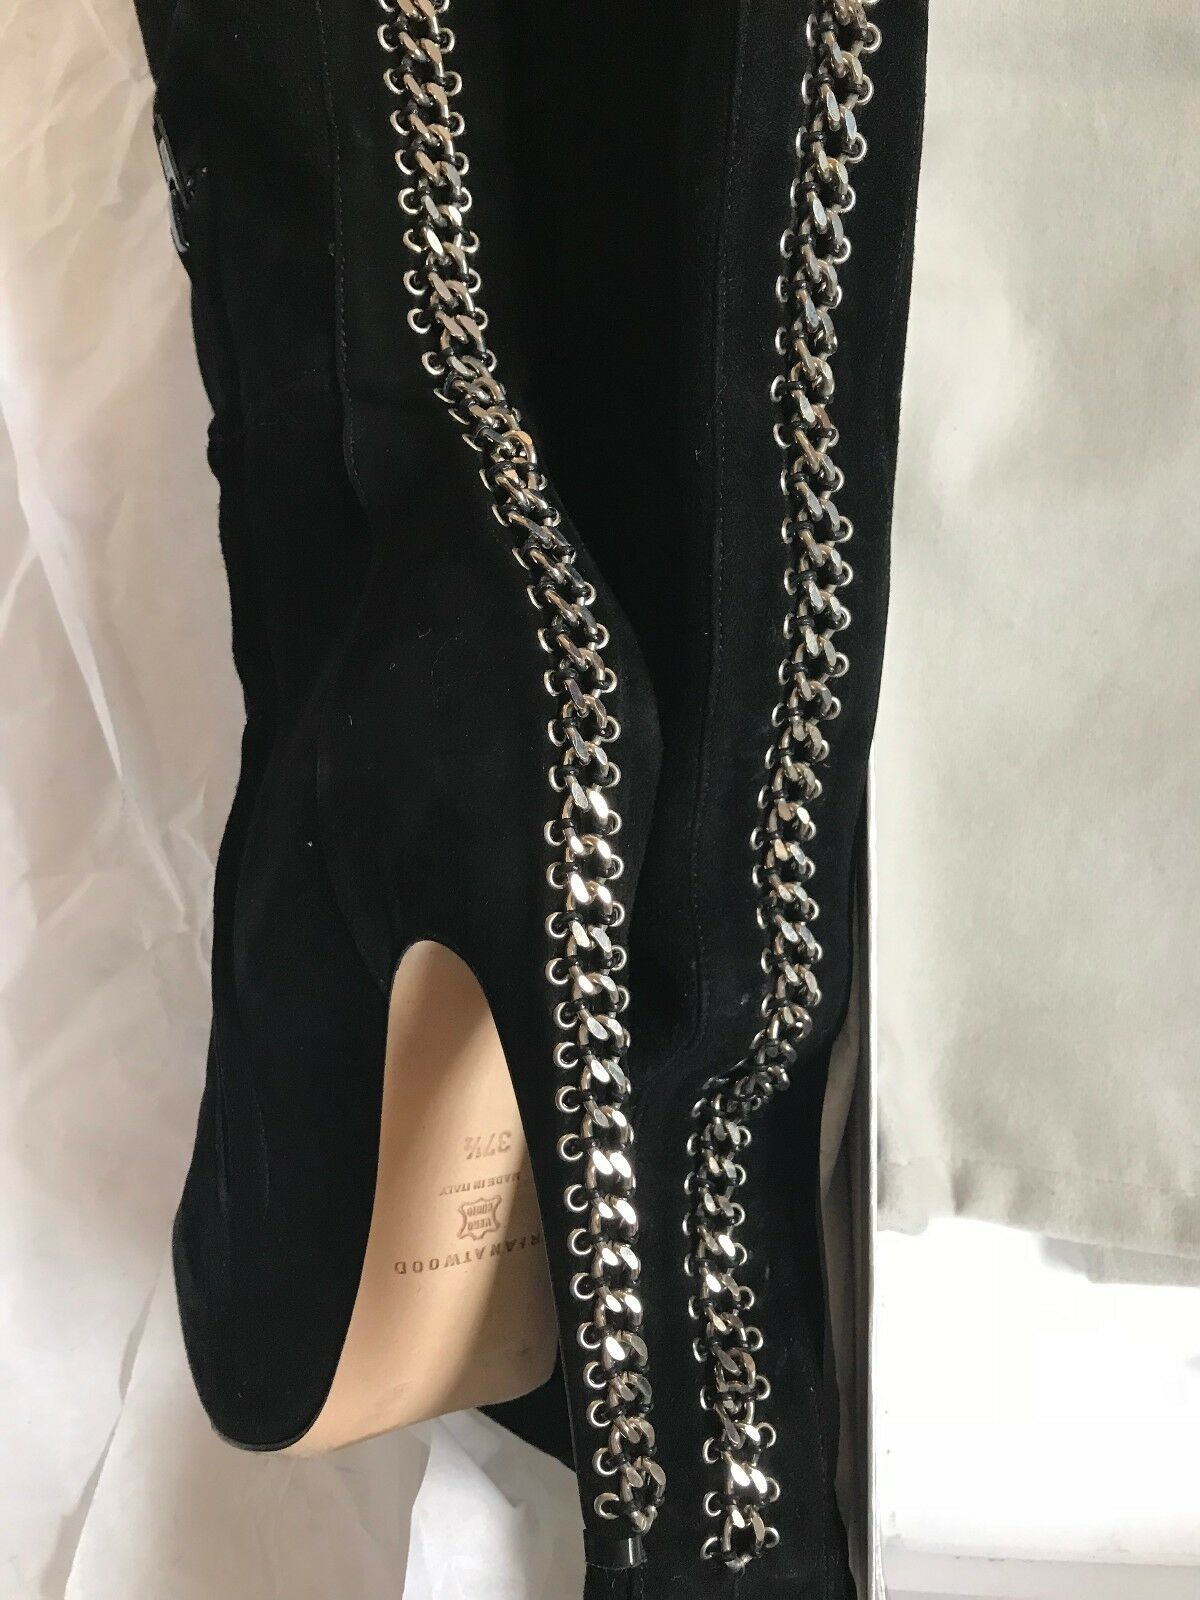 Brian Atwood Rachel Zoe Chain Back Back Back Over the Knee Boots Black Suede Size 37.5 1e09eb